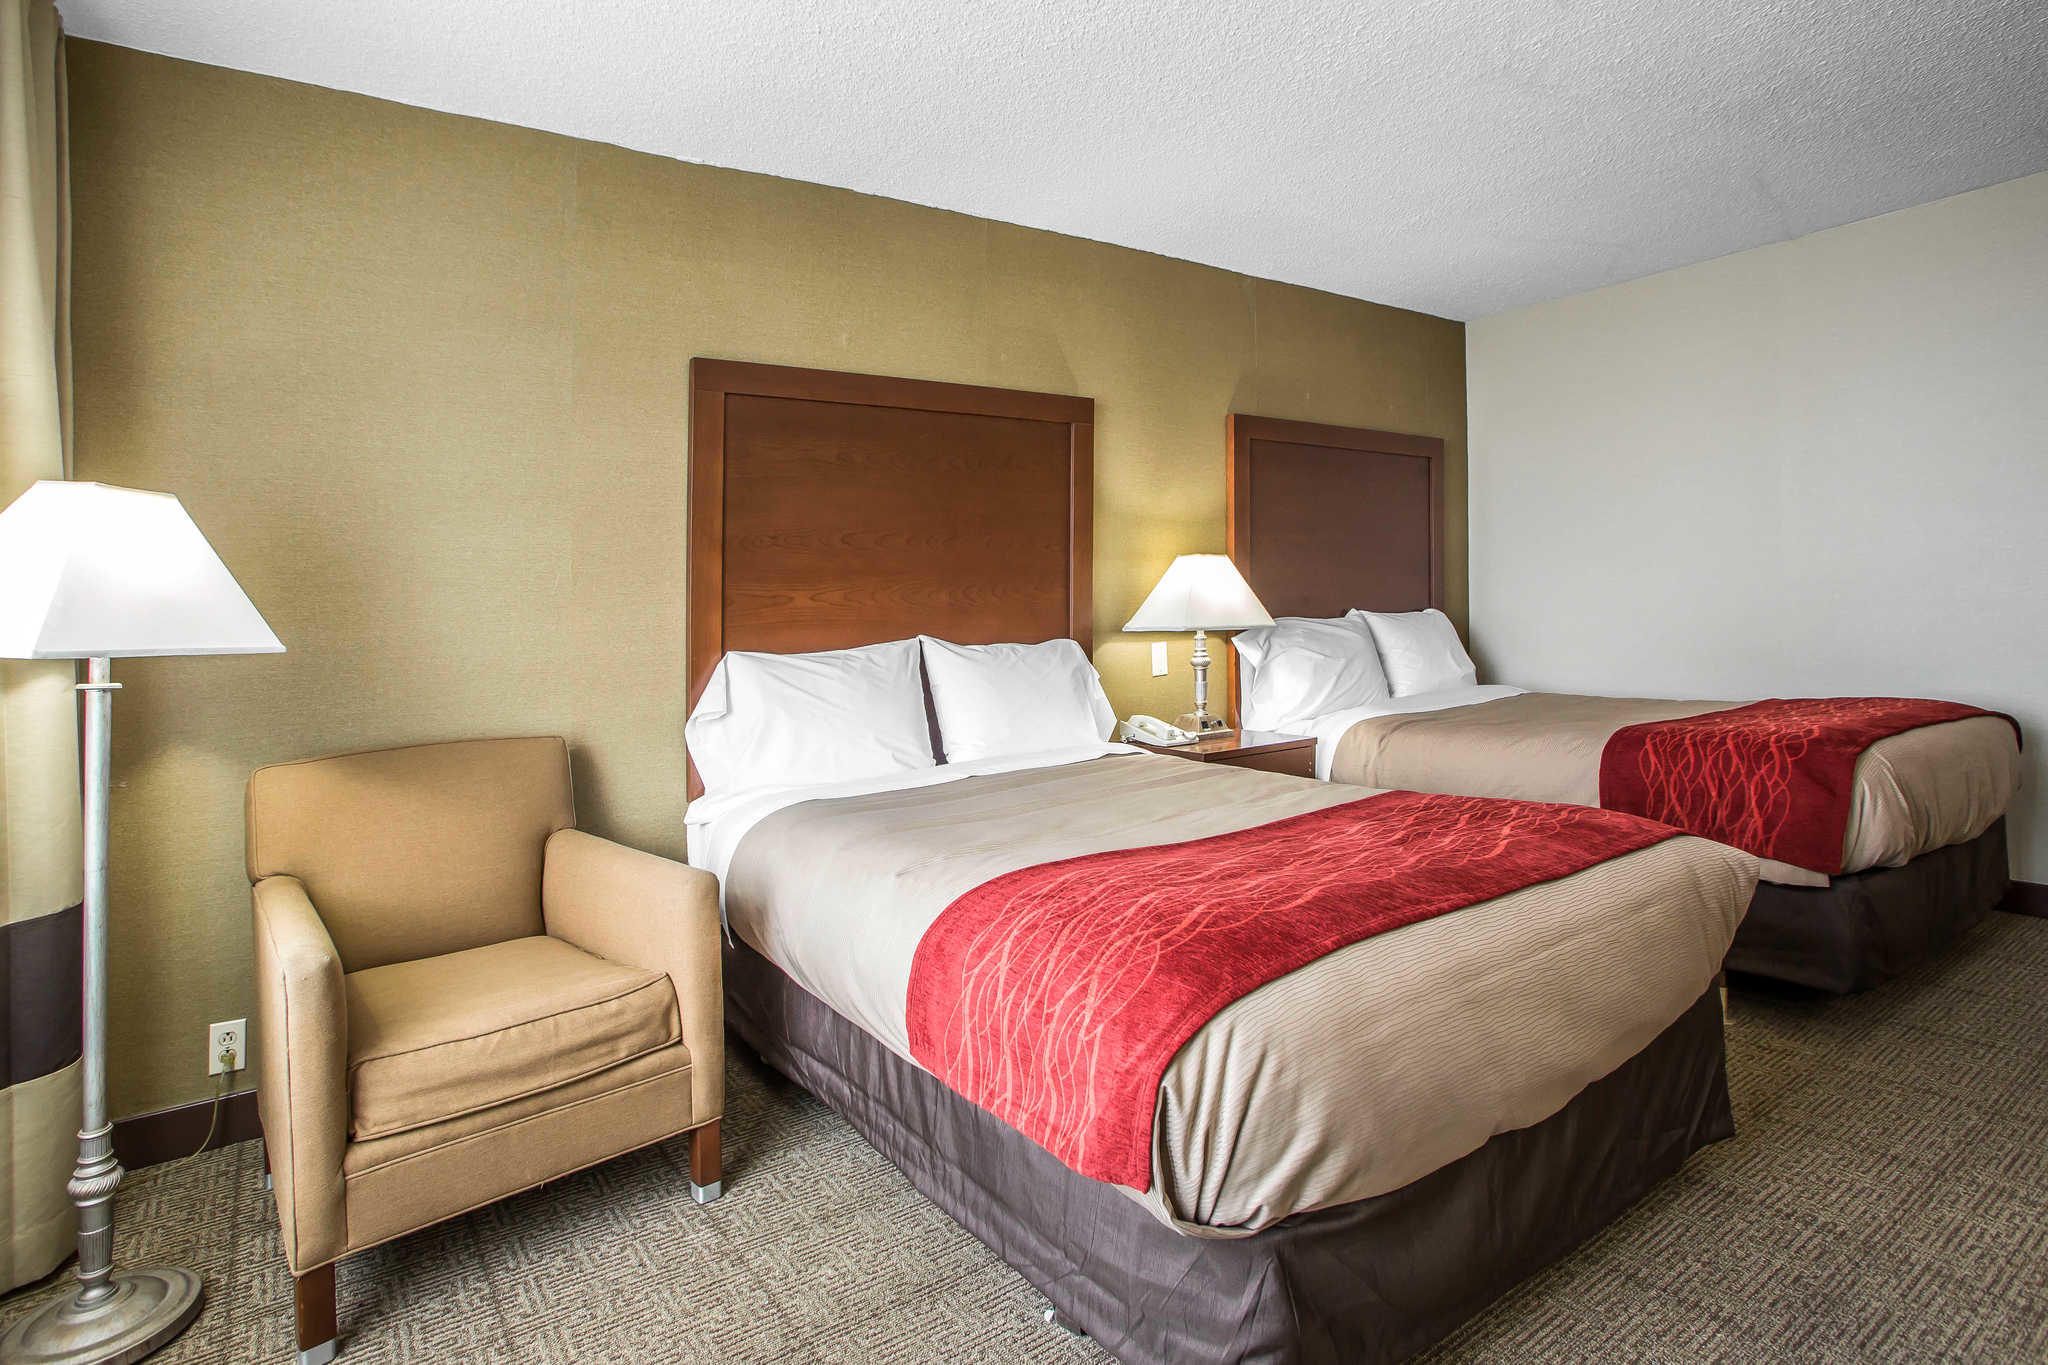 Quality Inn Midway Airport image 11